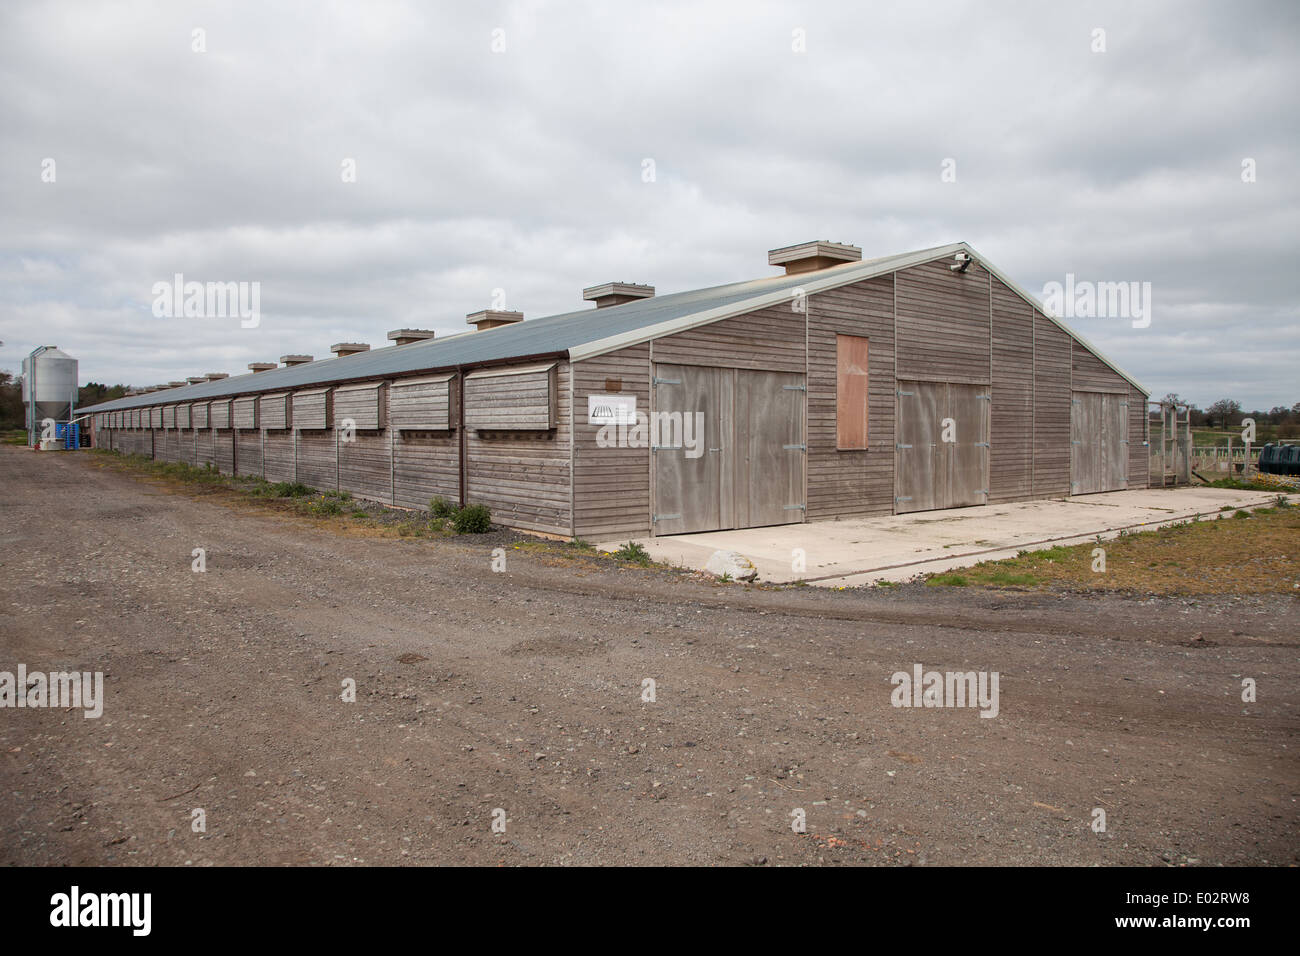 An industrial chicken rearing shed of a commercial breeder - Stock Image